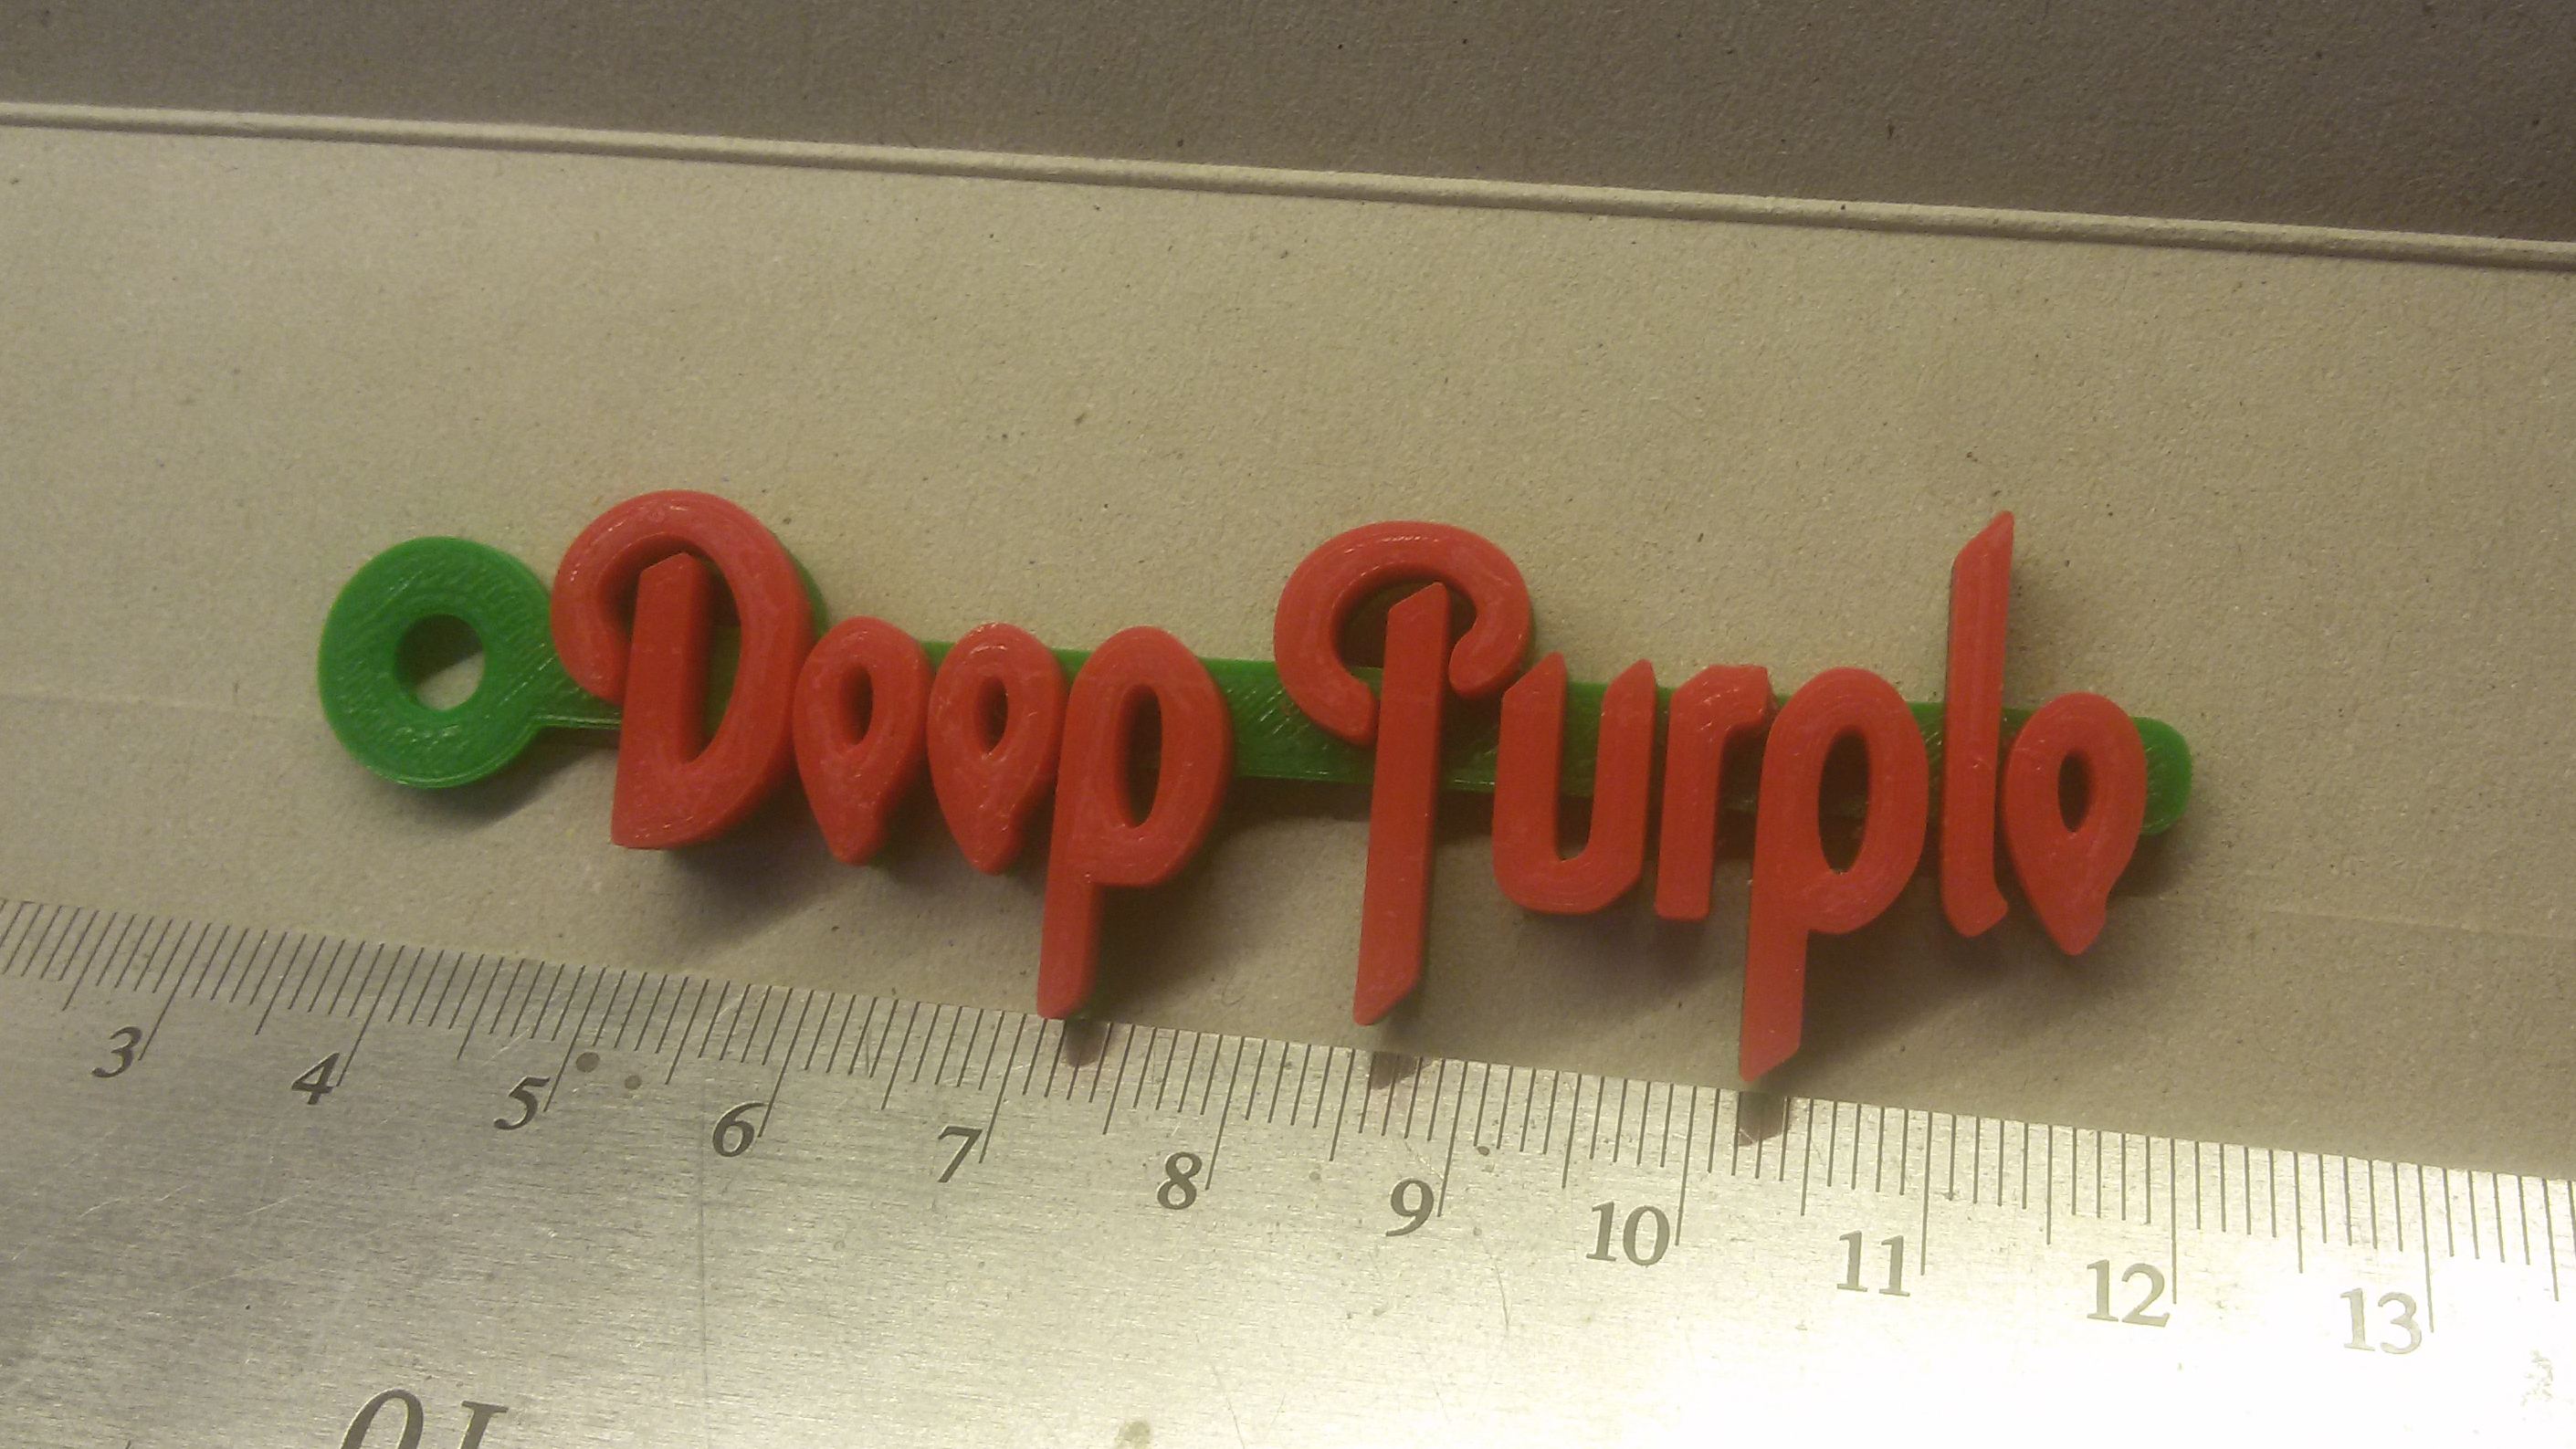 20180908_230612.jpg Download free STL file Deep Purple Logo Keychain • 3D printable model, mcko